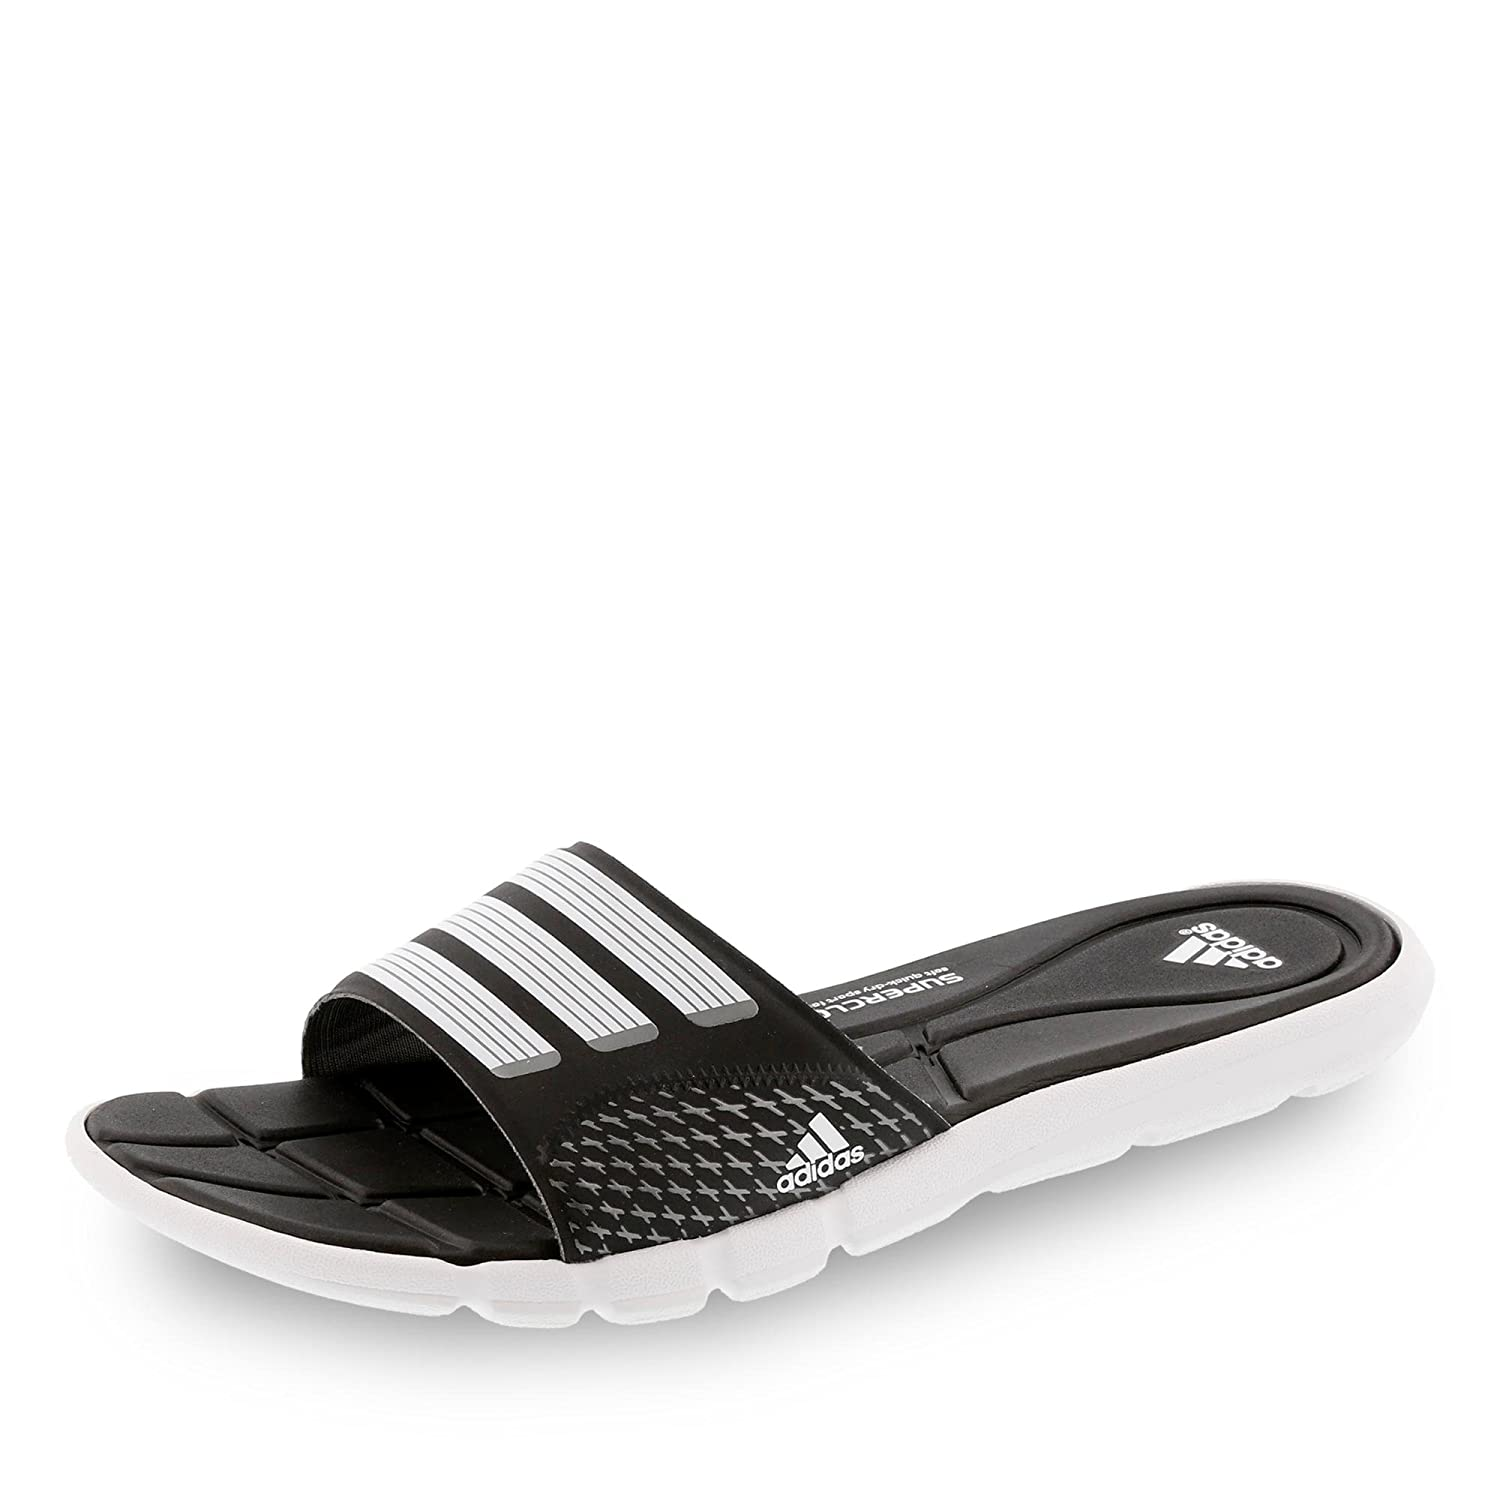 193d741e6342 Adidas AdiPure 360 Slide Women Badelatschen core black-white-iron ...